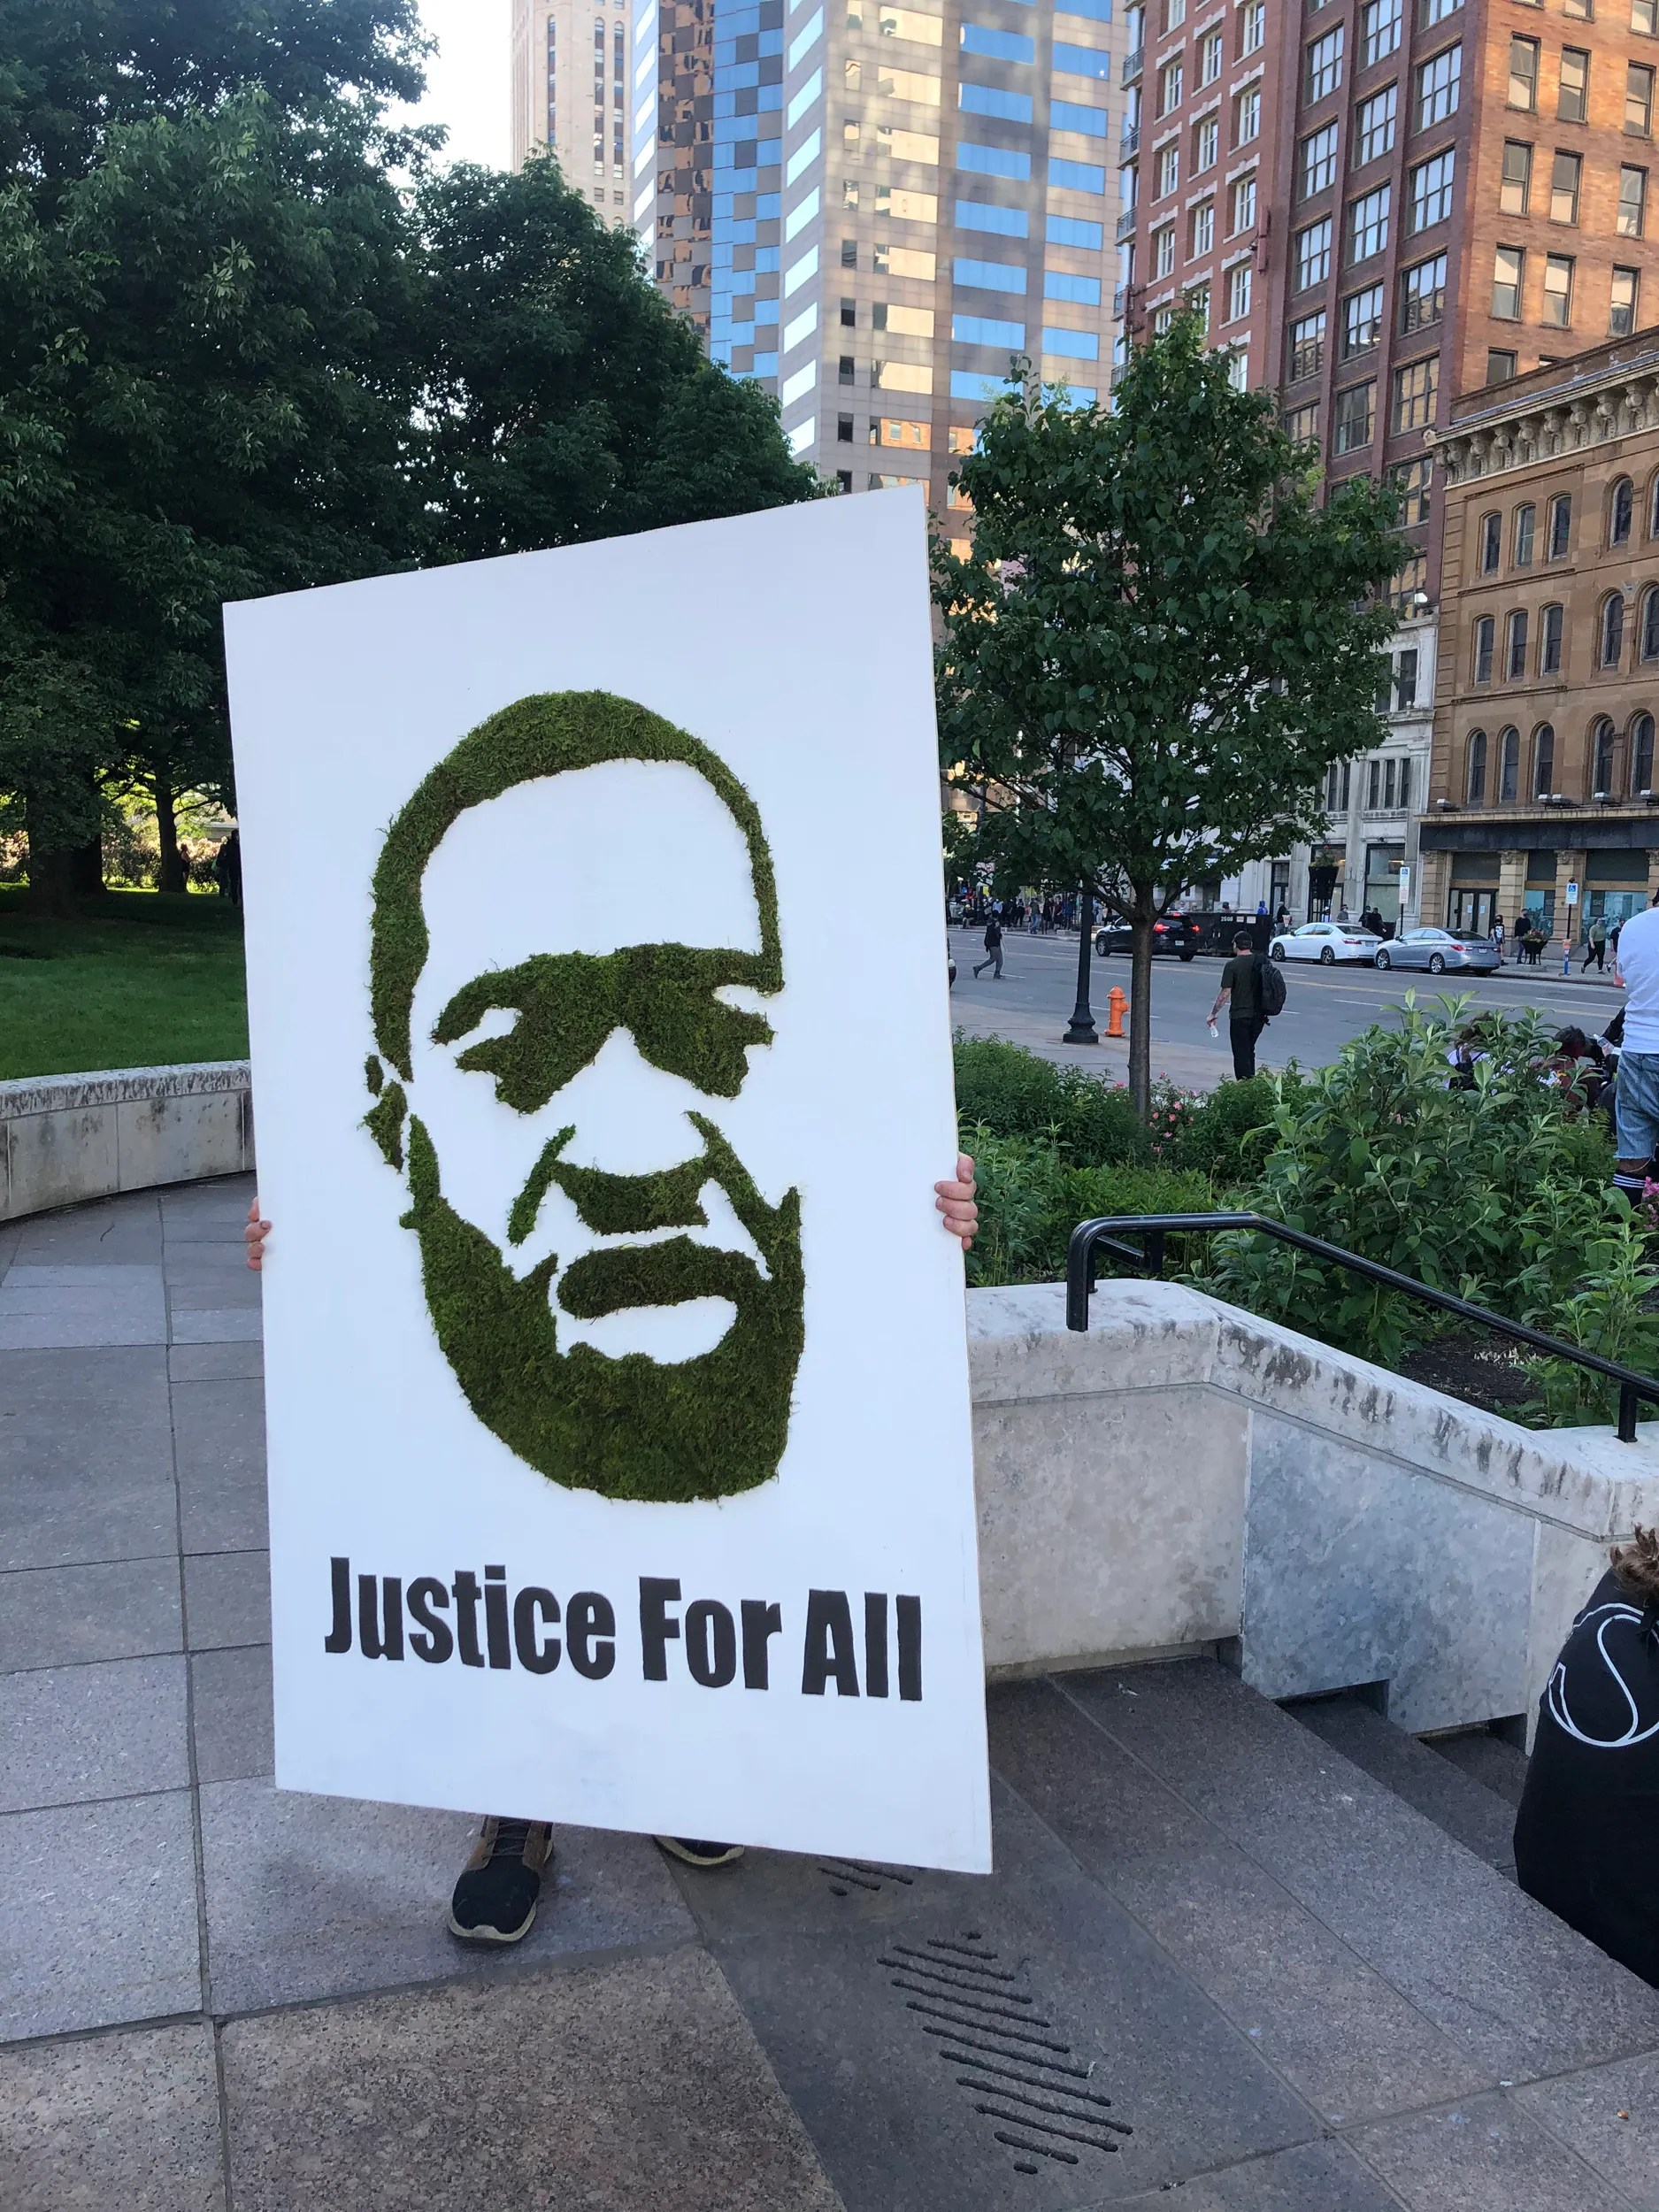 A protestor carries a poster featuring a picture of George Floyd on May 31, 2020. Floyd, a 46-year-old black man, was killed while in police custody after allegedly passing a counterfeit $20 bill at a convenience store.